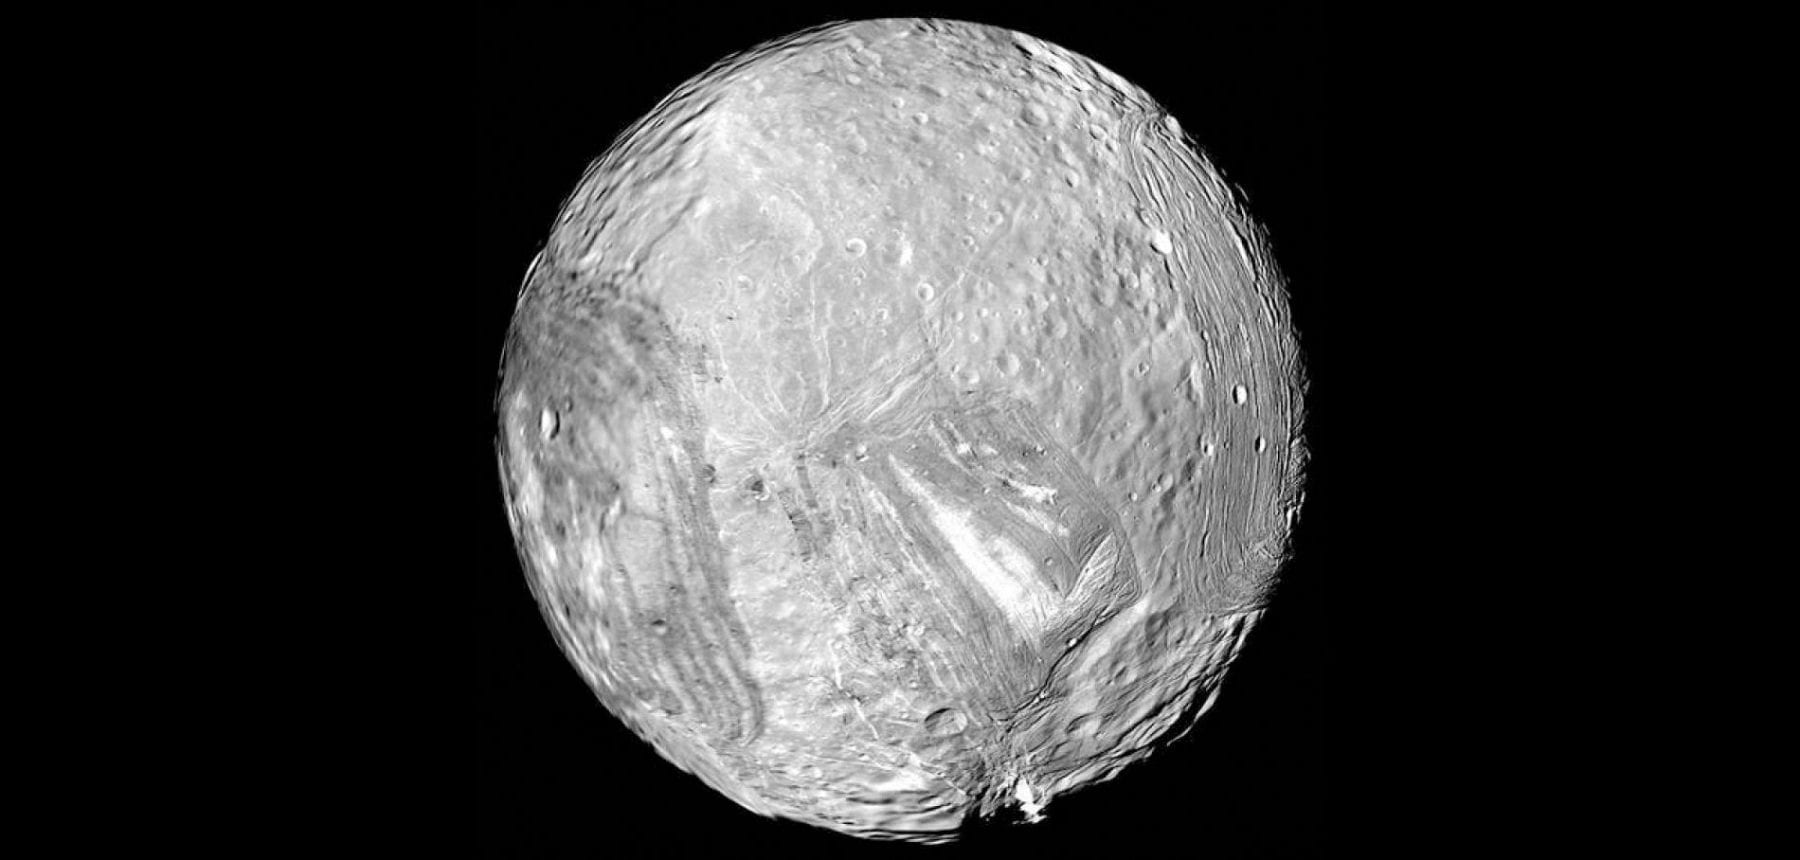 The strange moon Miranda with its damaged surface. Source: National Geographic